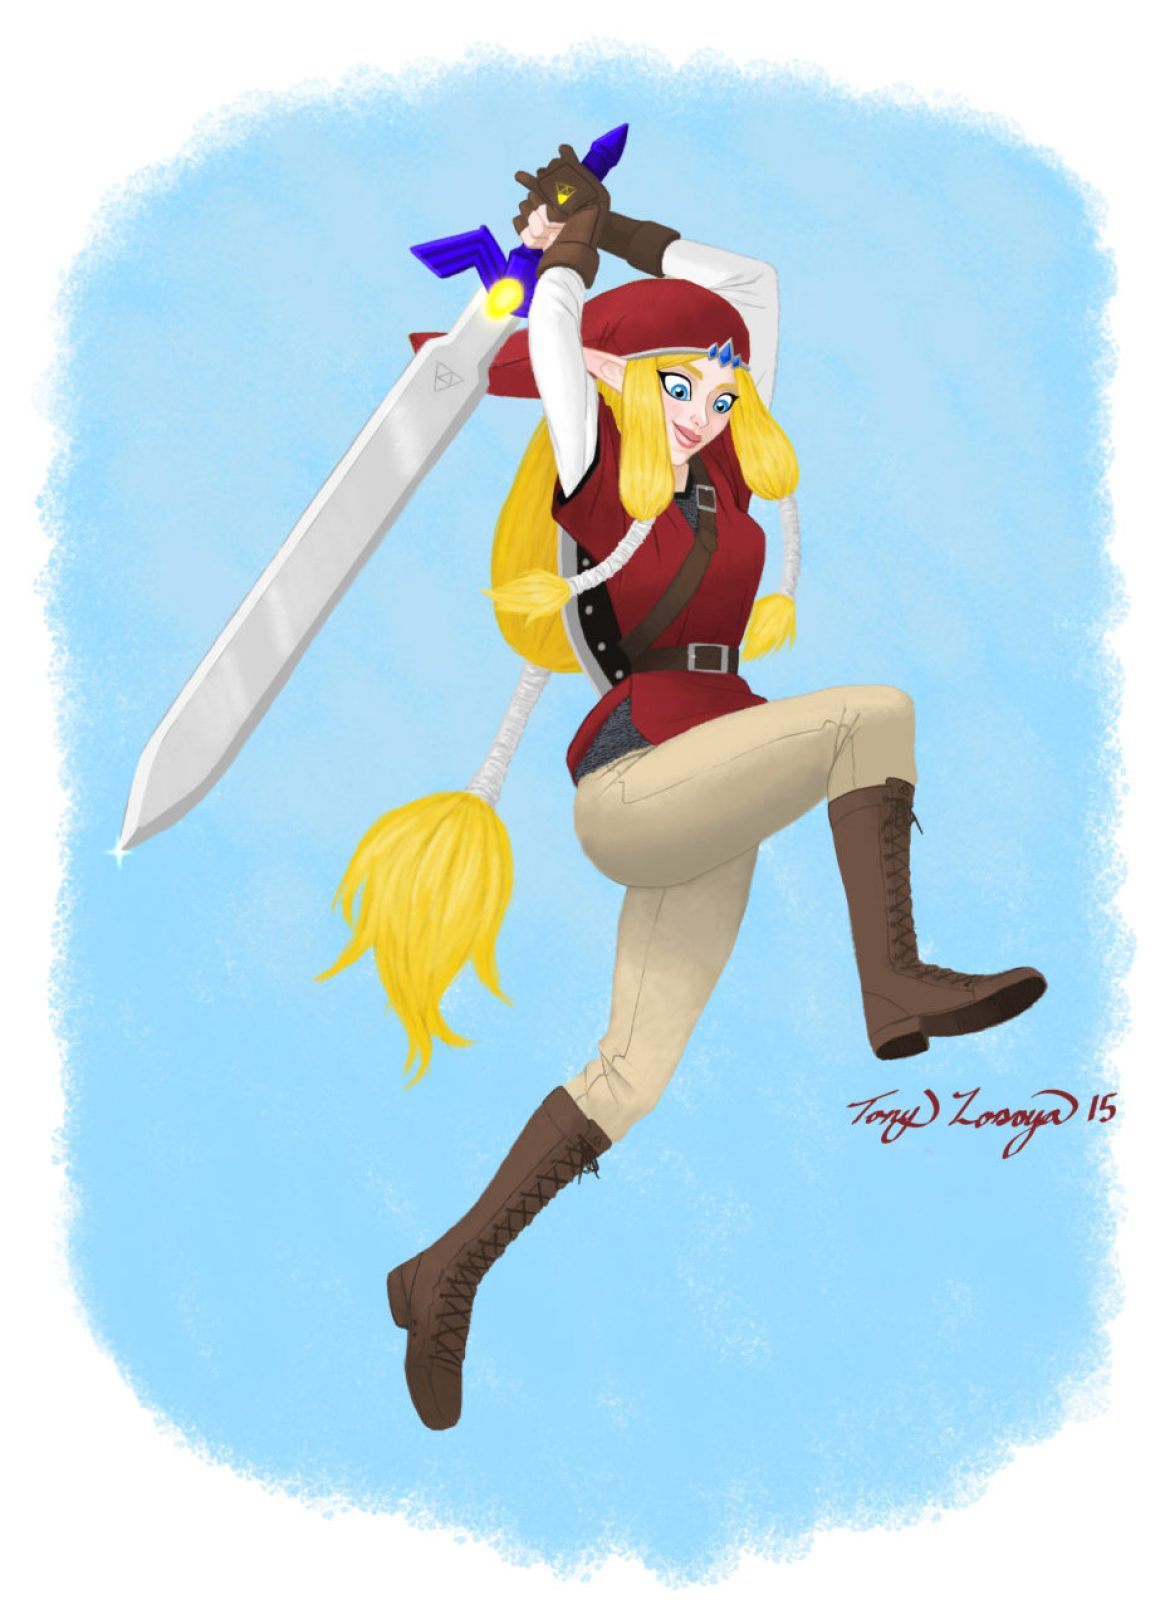 WarriorZelda